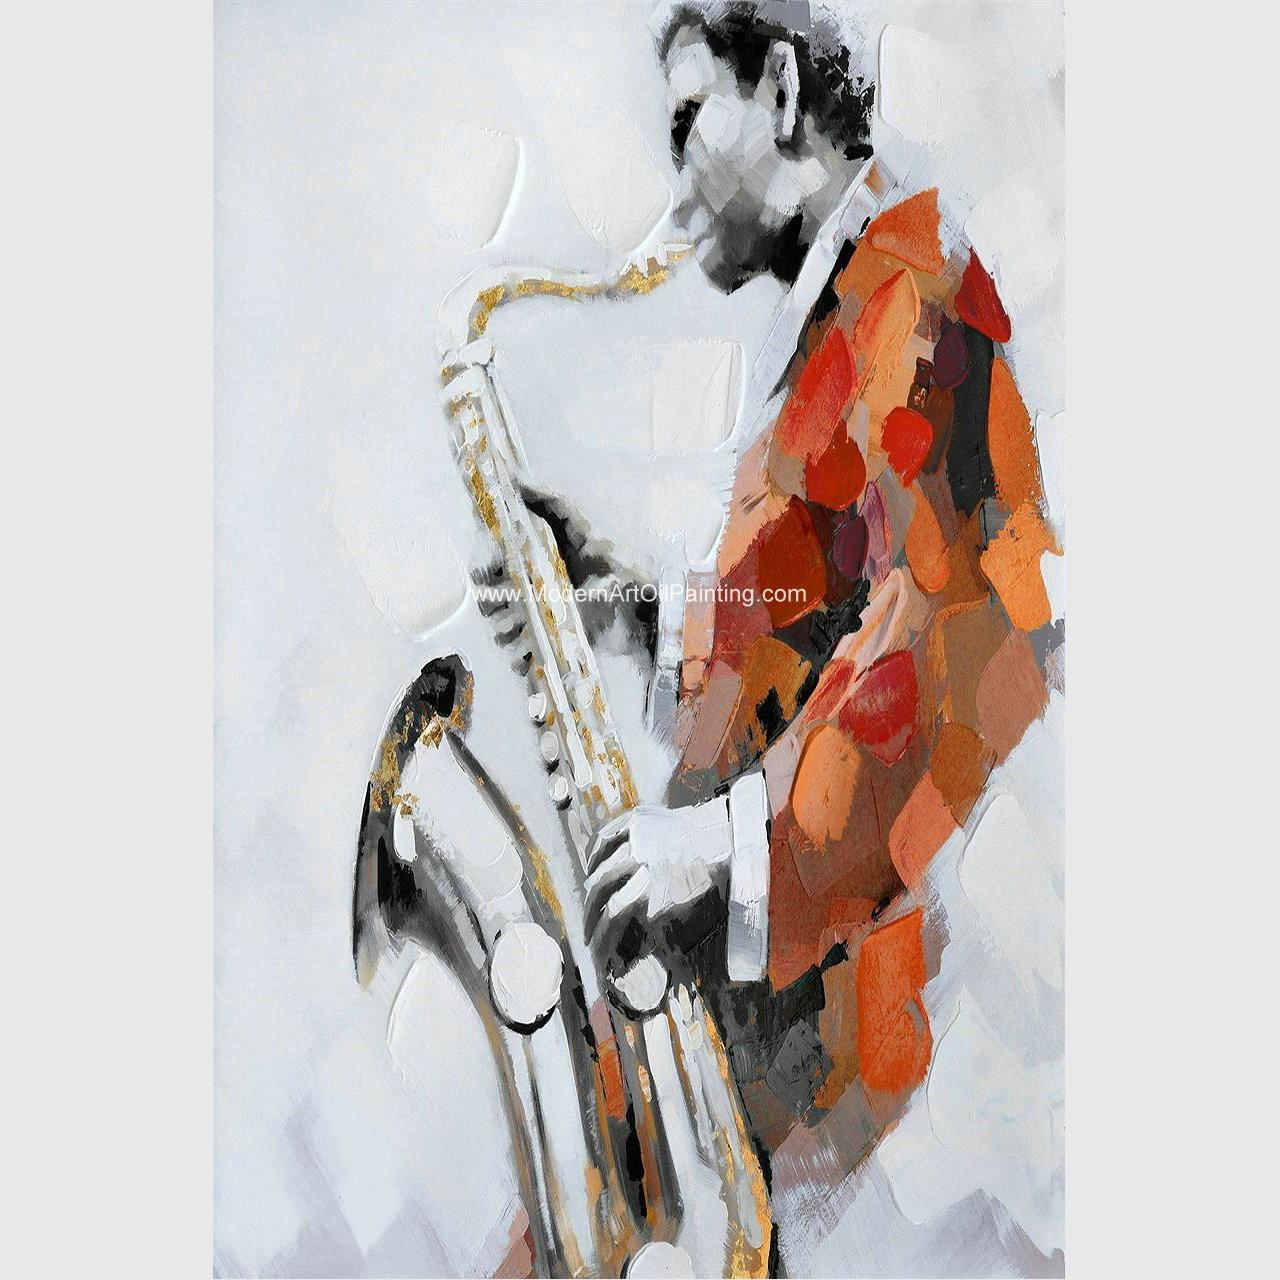 Quality Custom Oil Painting Modern Abstract Art Handmade Canvas Saxophone Room Decor for sale